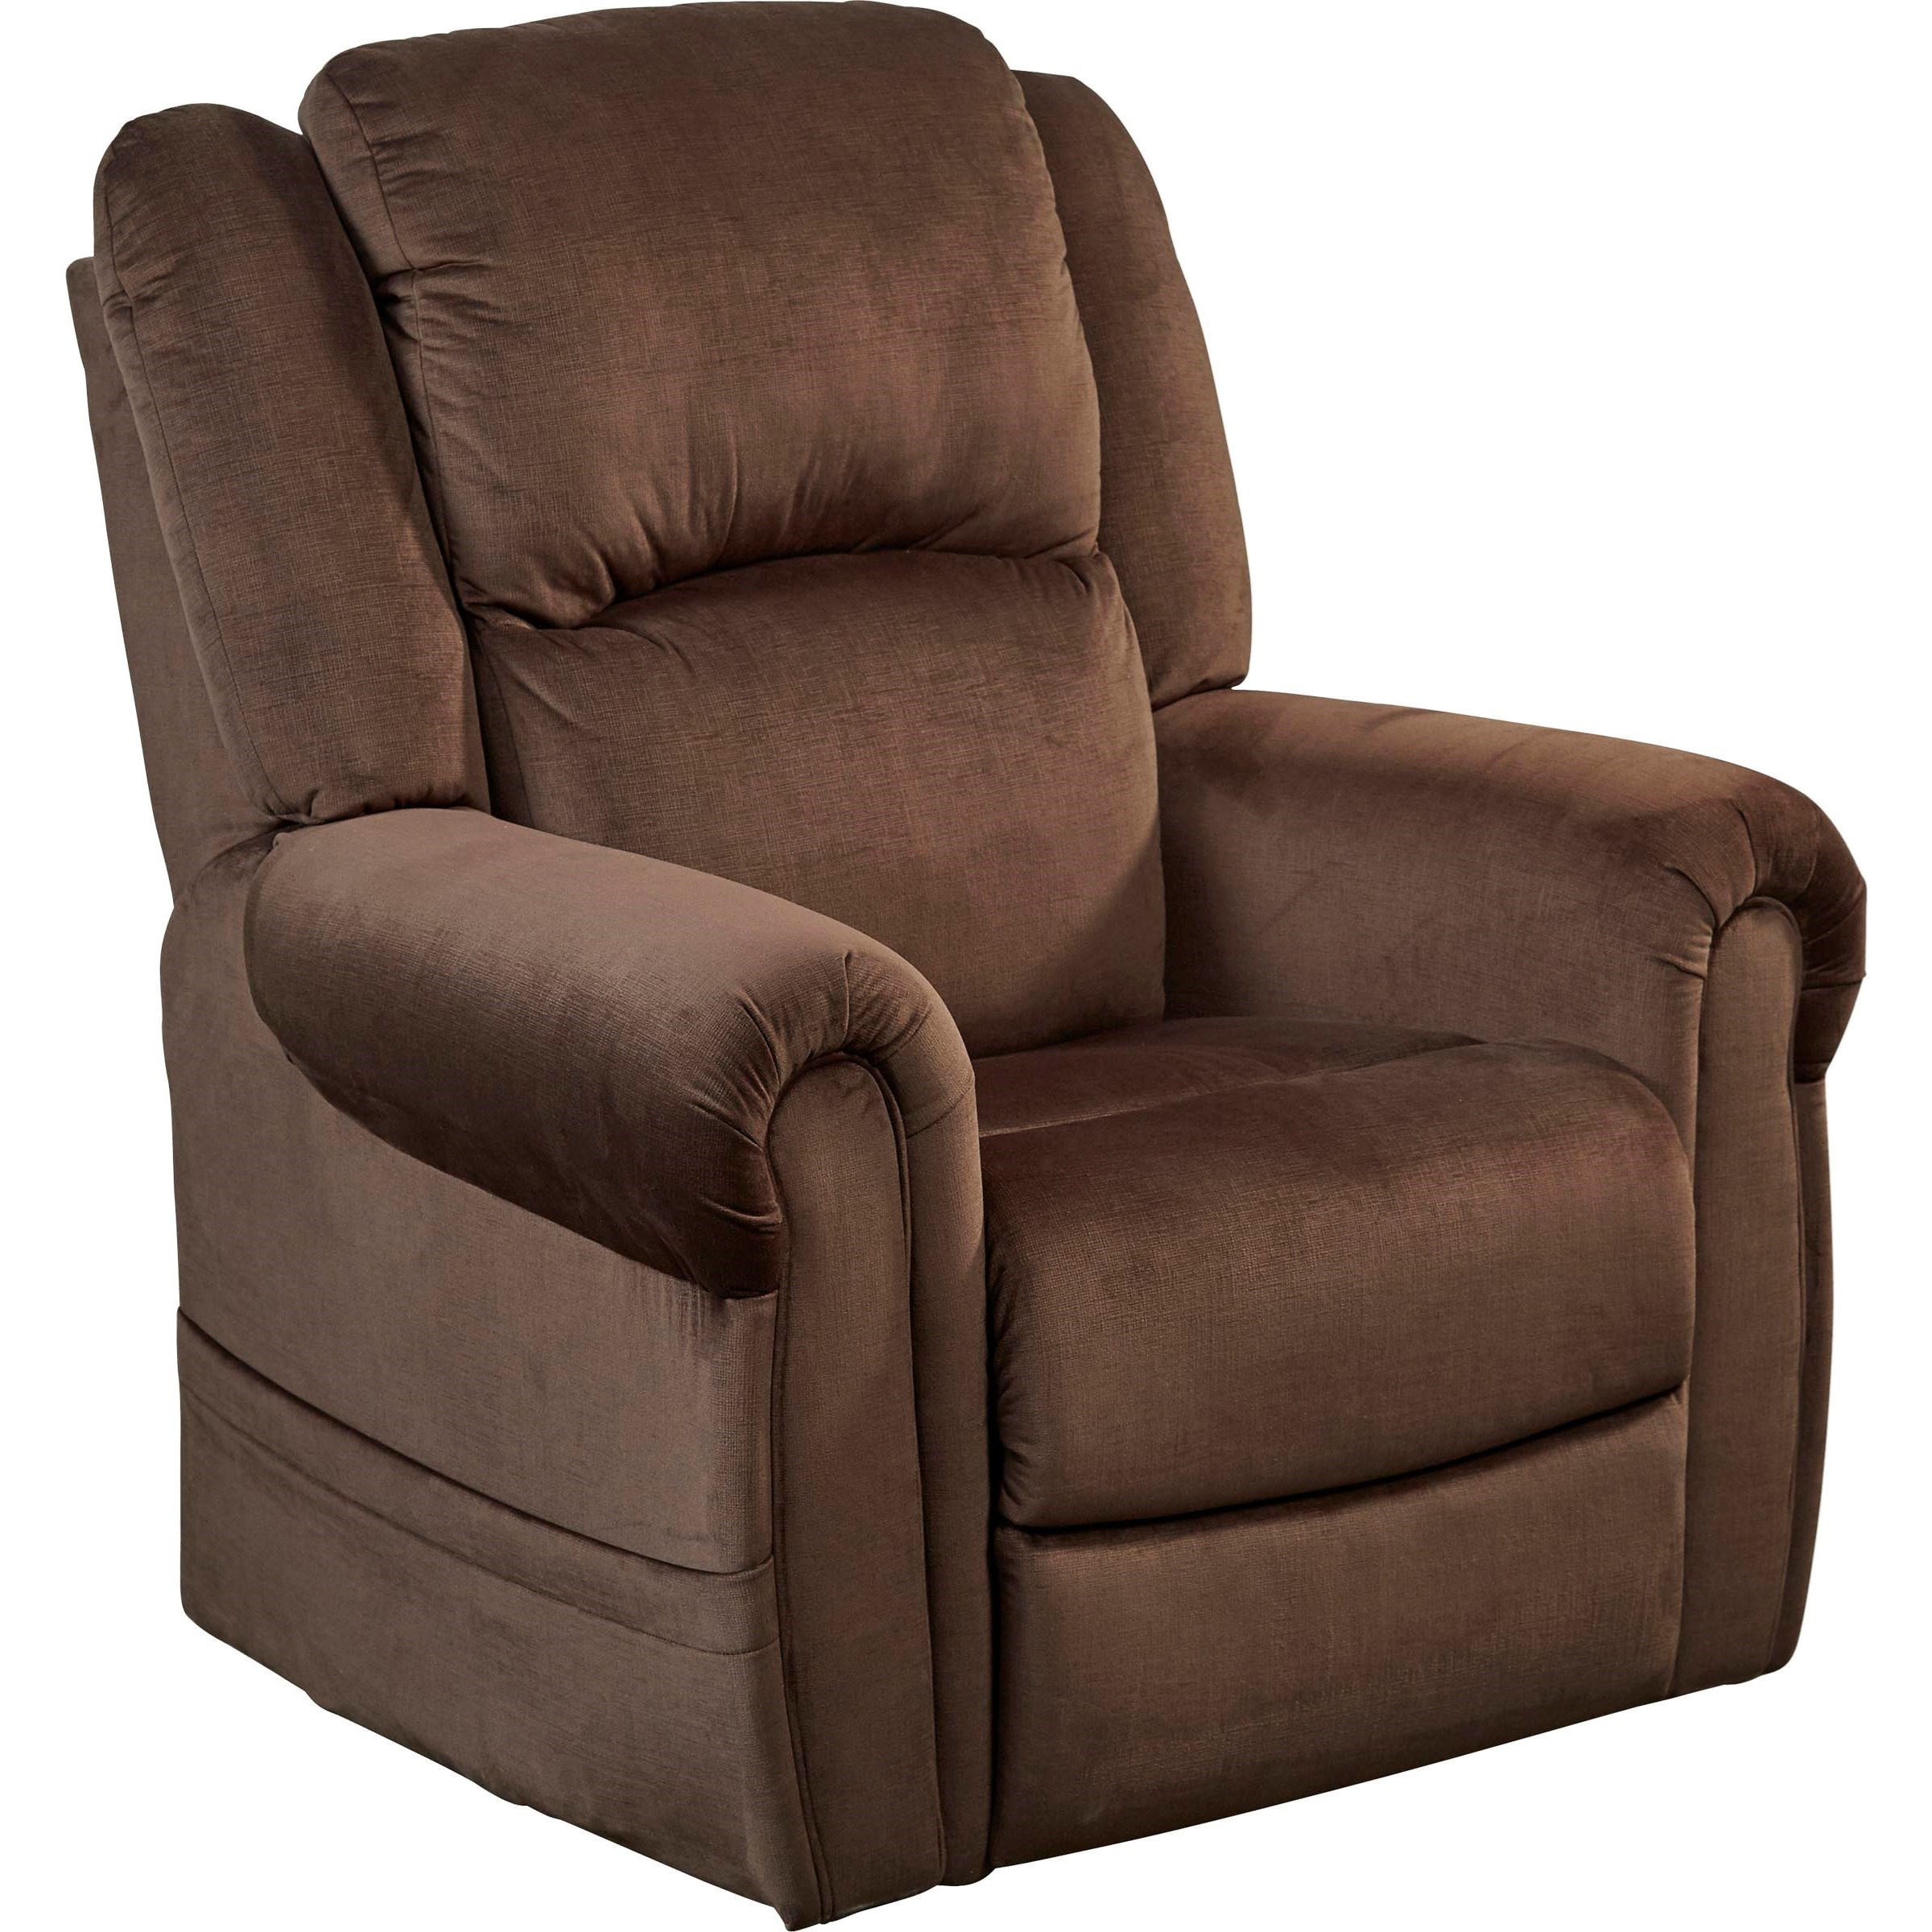 Lift Chairs Recliners Delivery Estimates Northeast Factory Direct Cleveland